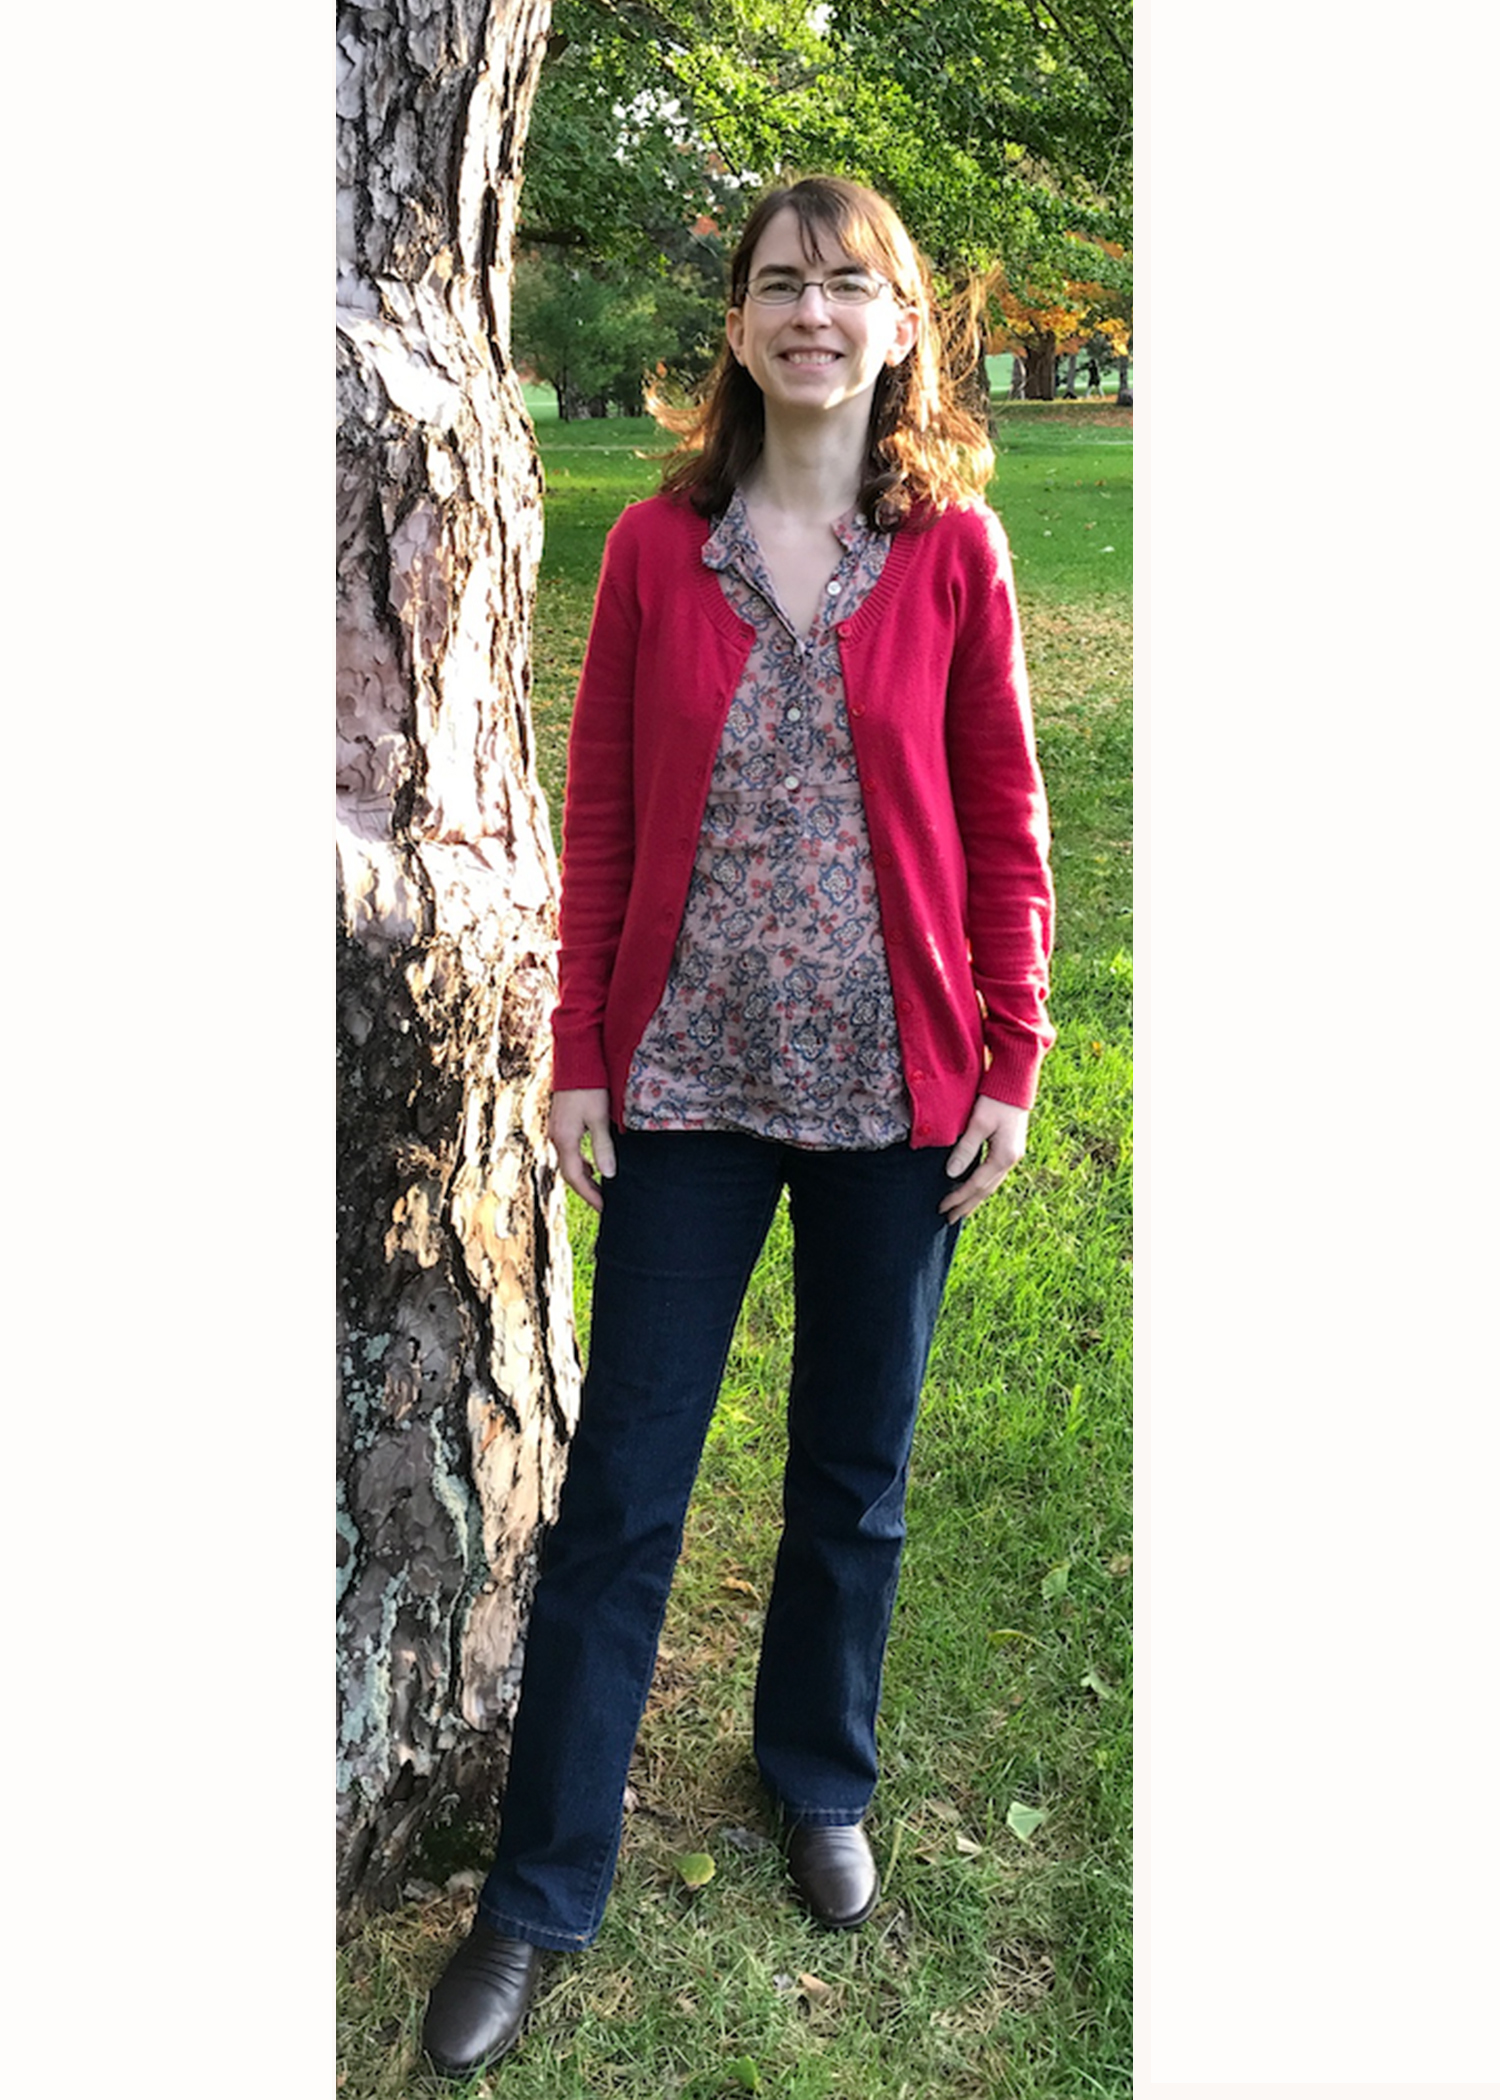 Erin French - PhD student in Apparel, Merchandising, and Design.